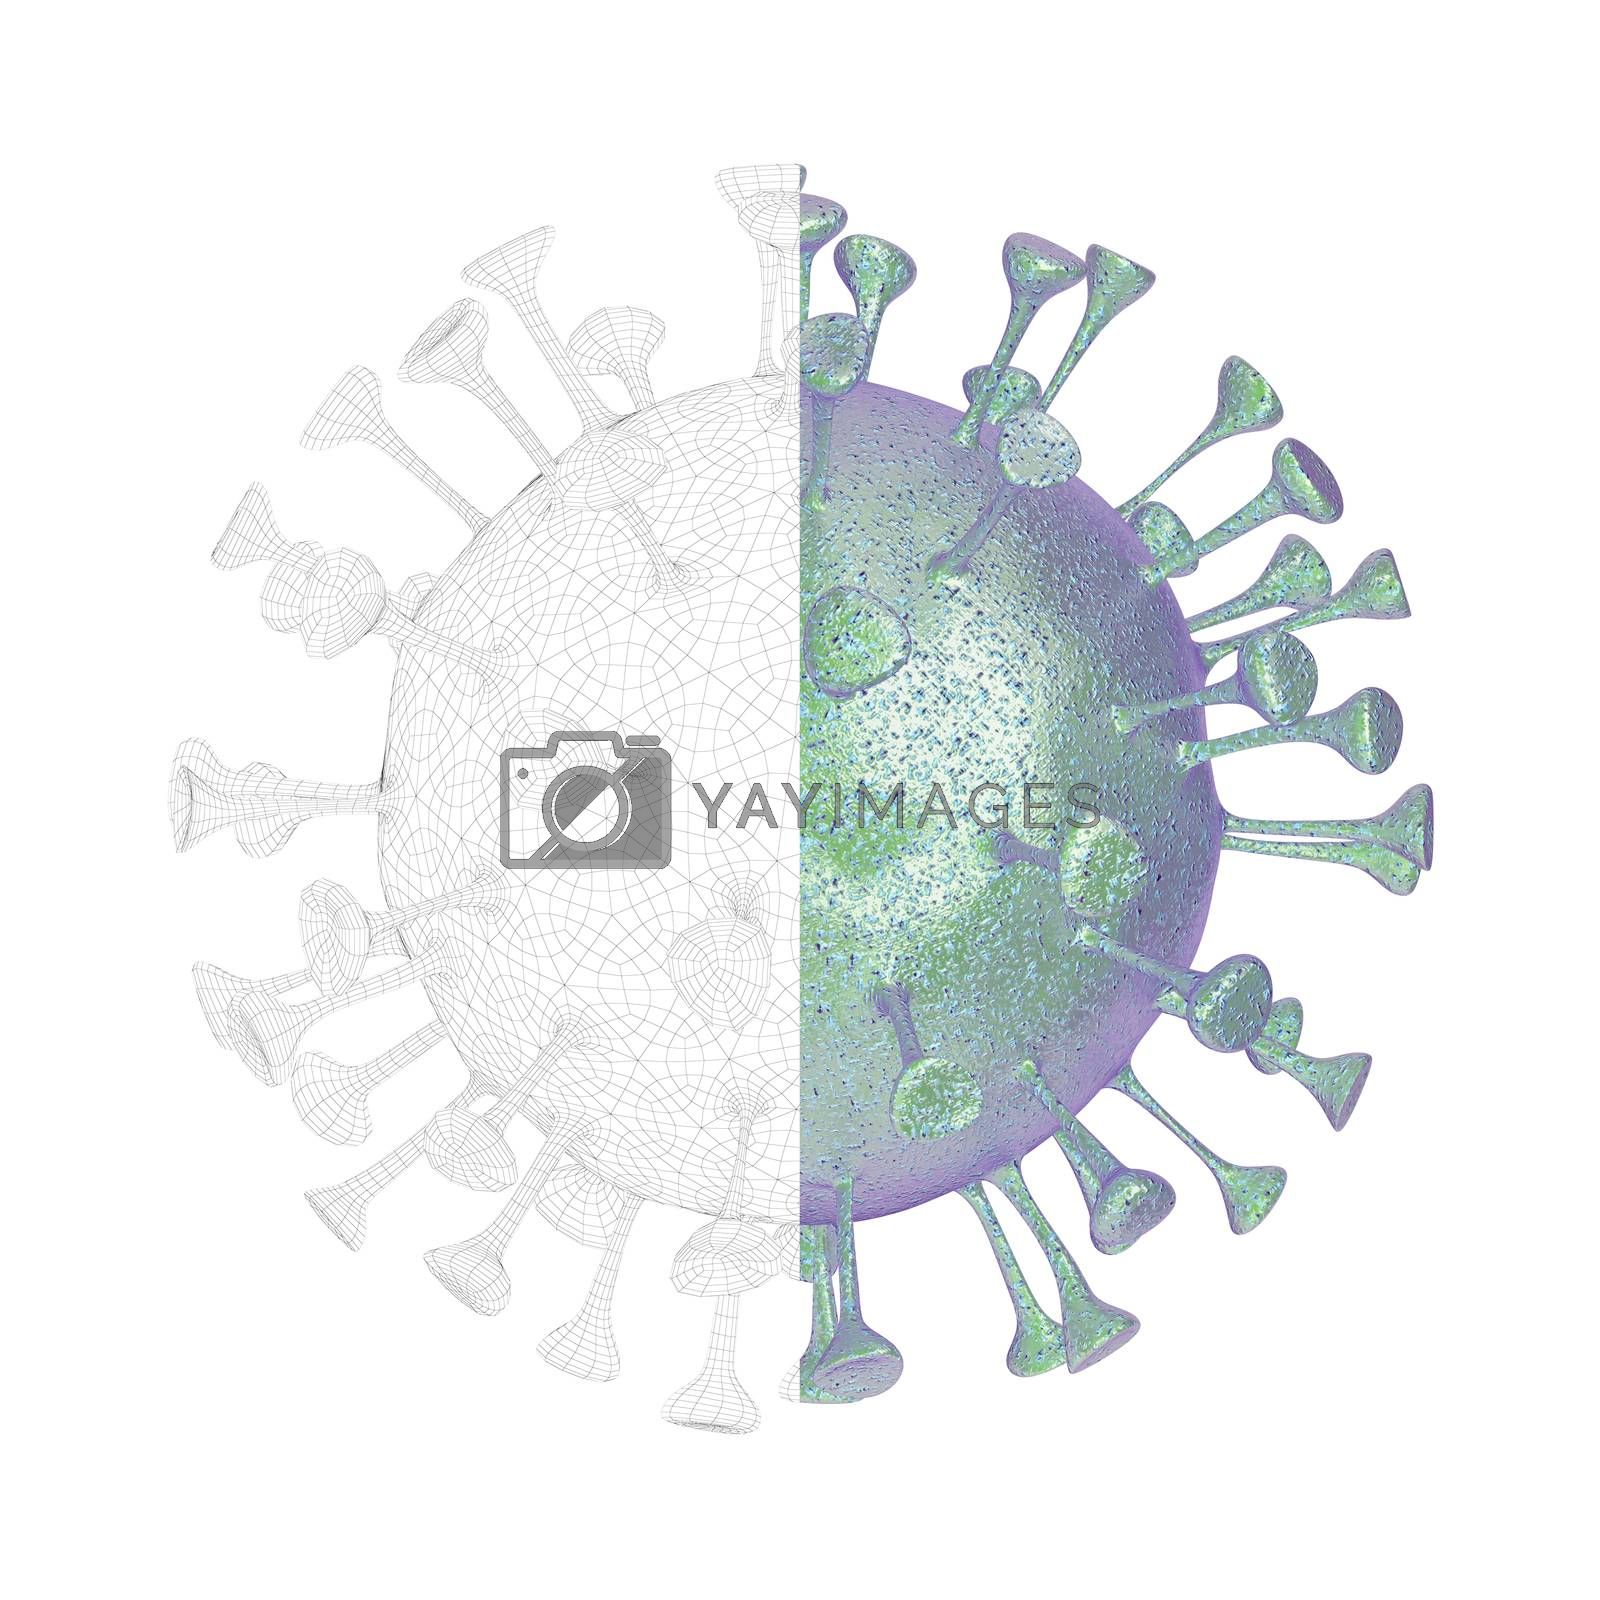 3D render of virus by magraphics